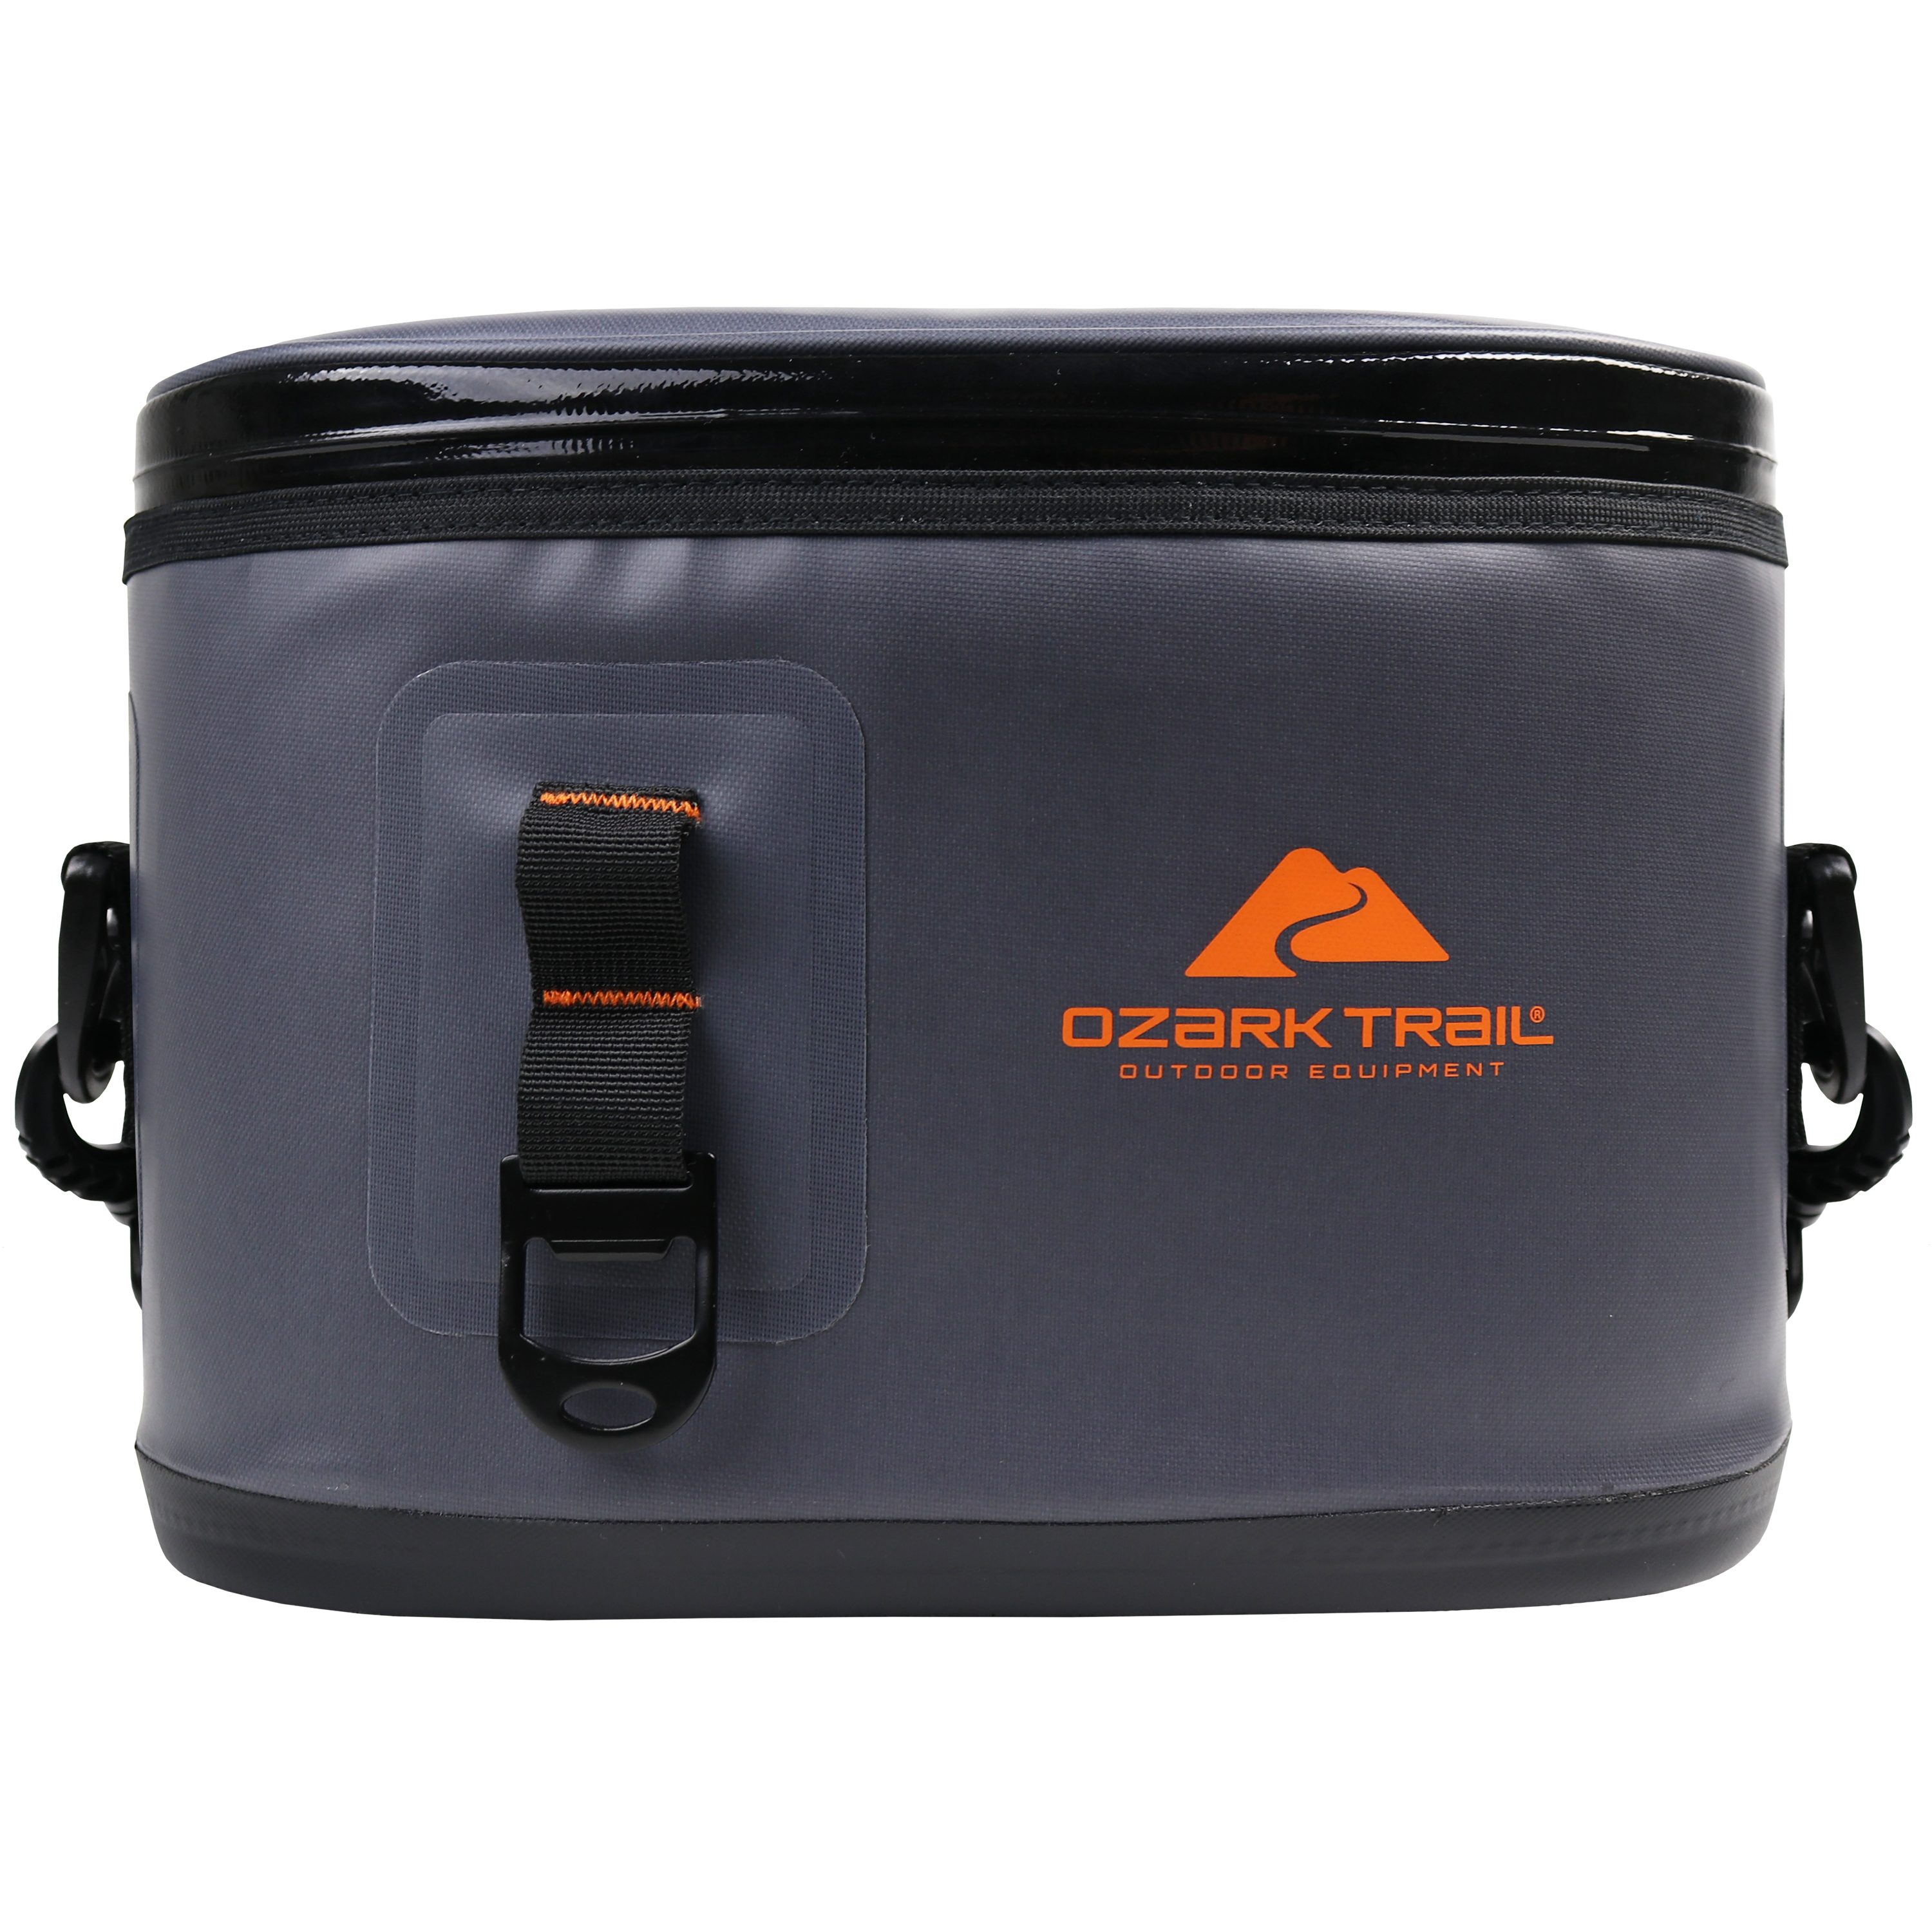 Ozark Trail Premium 6 Can Cooler with Bottle Opener, Gray